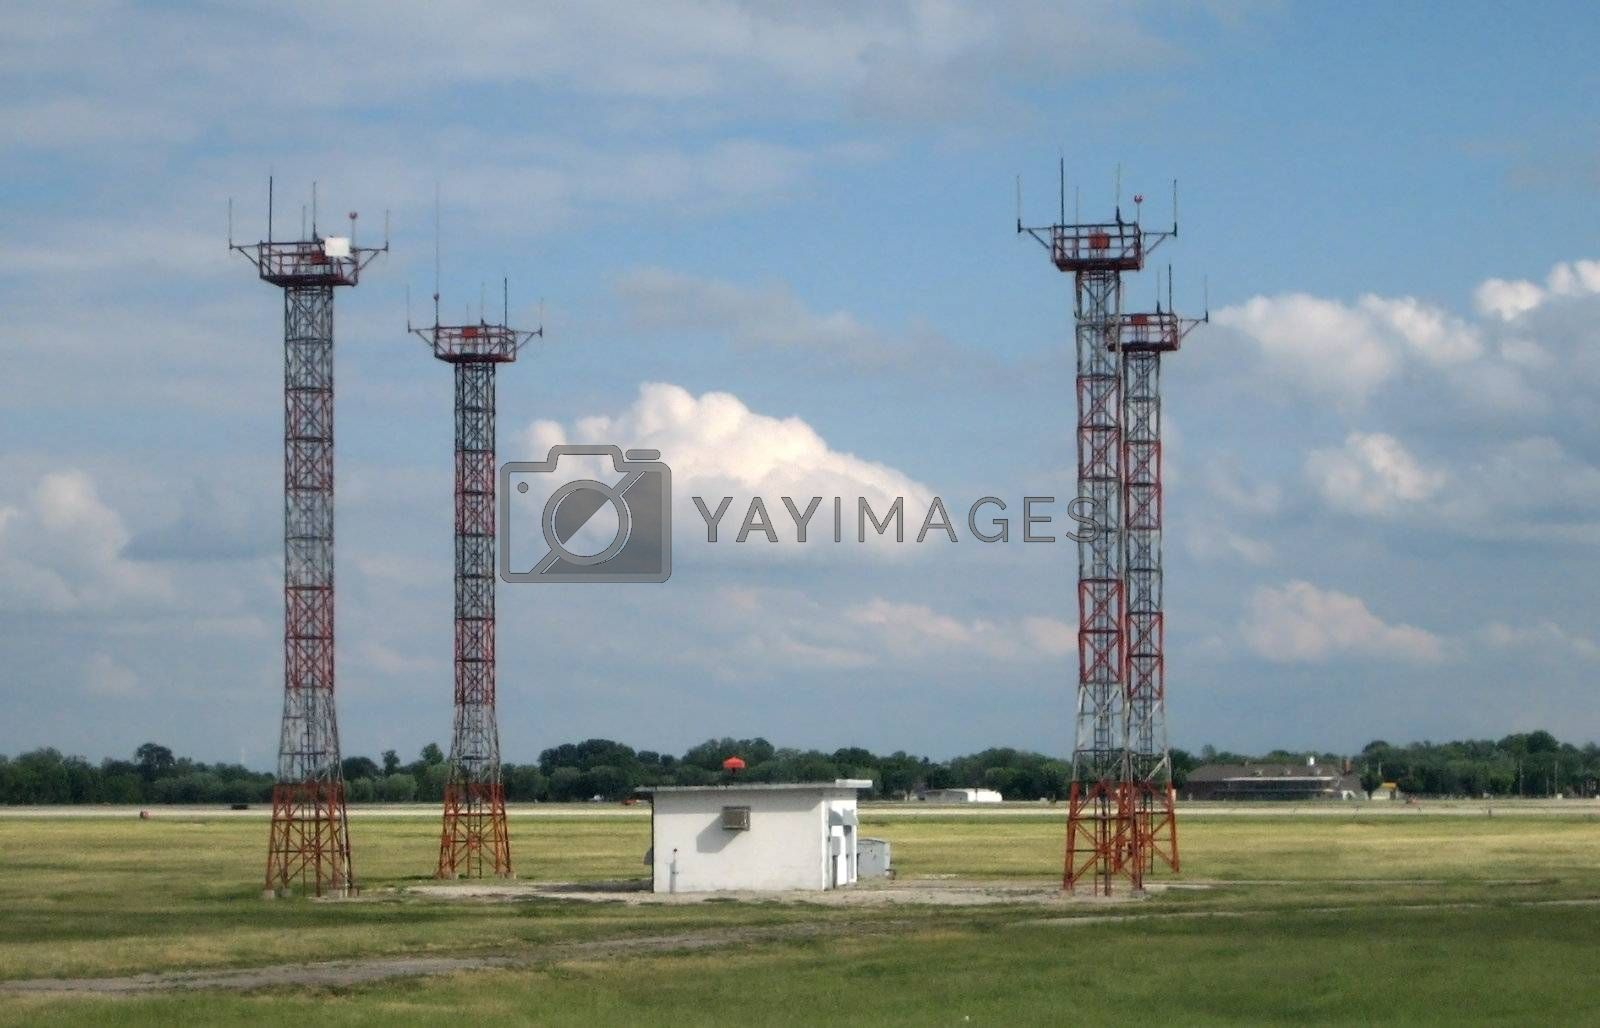 Stock pictures of antennas and other parts used in an airport for communications and operations support